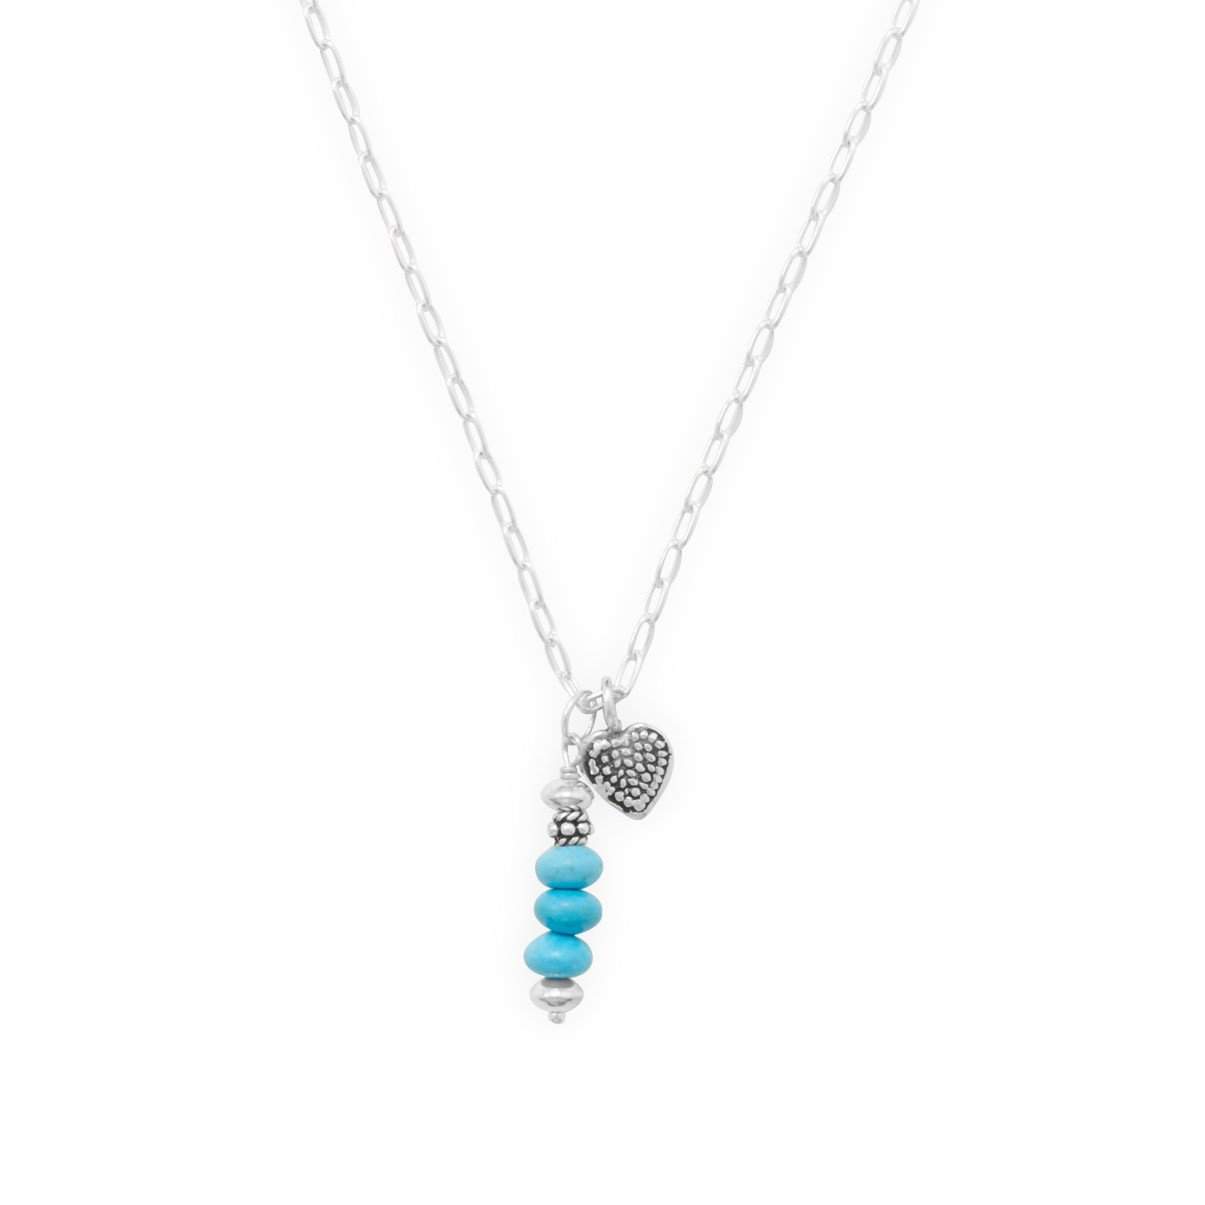 16″ Handmade Necklace with Reconstituted Turquoise Totem and Heart Charm